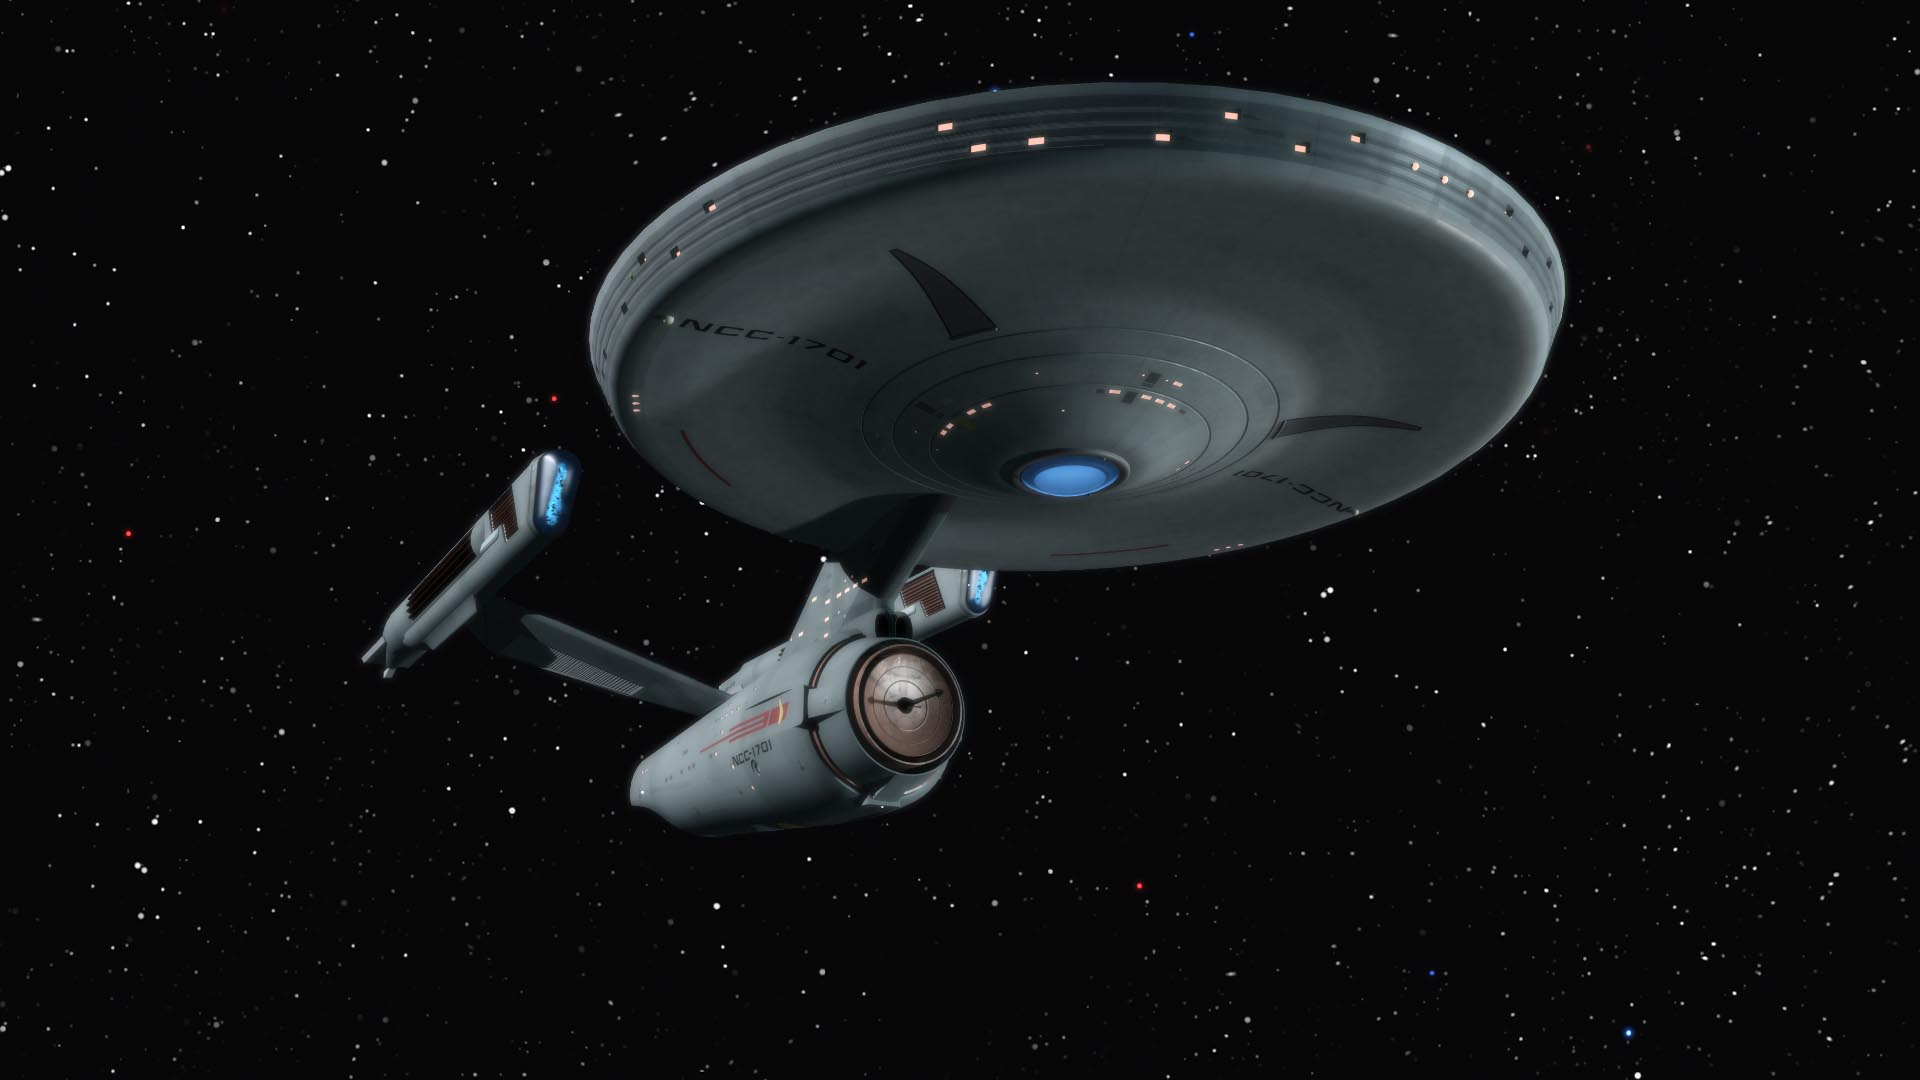 Star Trek New Voyages: Phase II